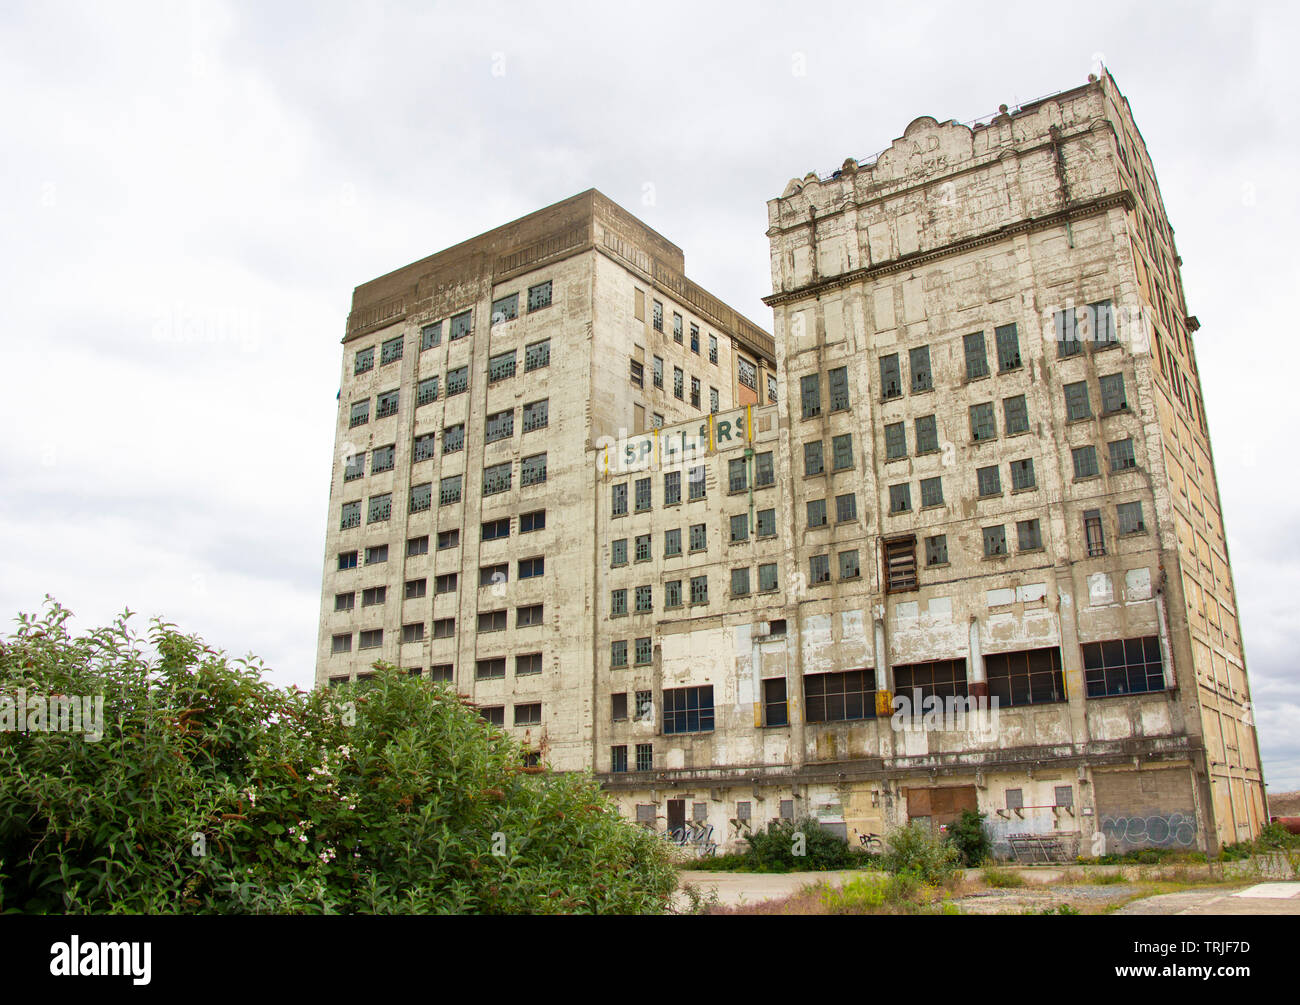 Millennium Mills in Silvertown, London - Stock Image